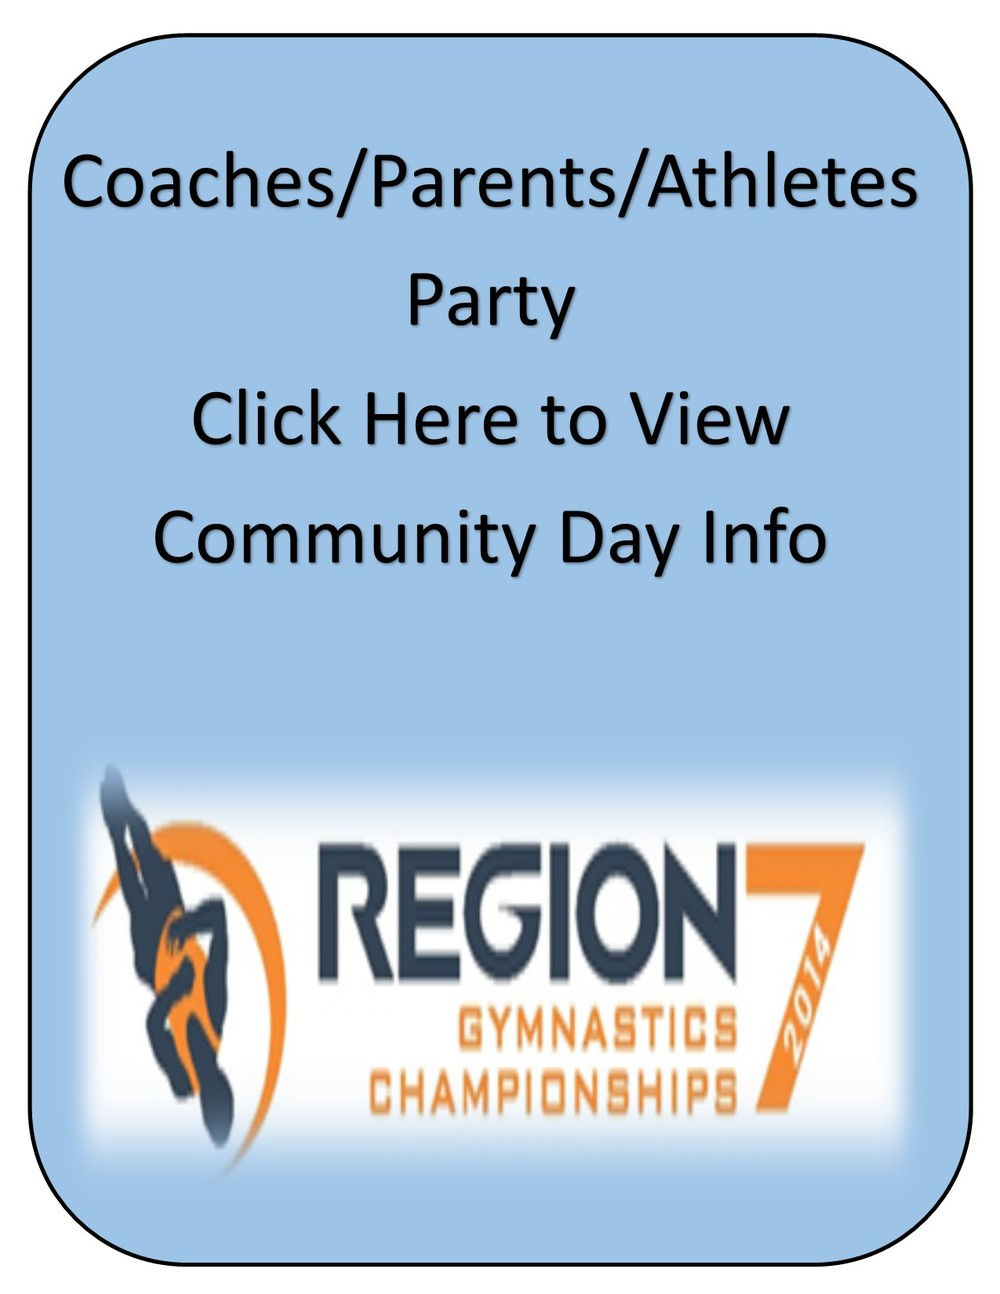 Comm day coaches athletes family part call out icon for web.jpg